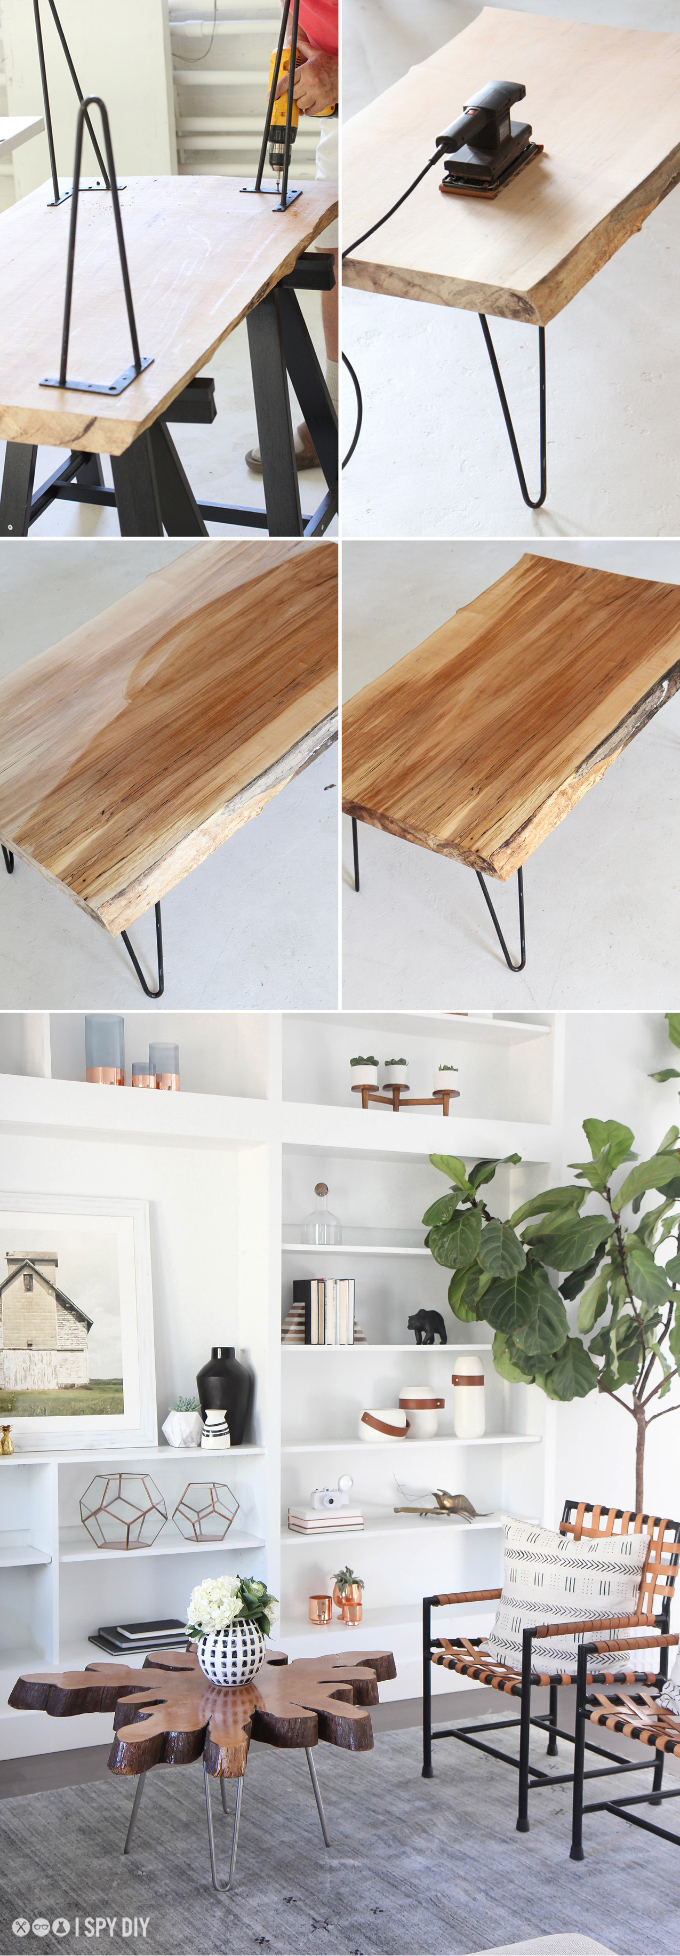 ispydiy_ep1_flippinfriends_liveedge_table copy